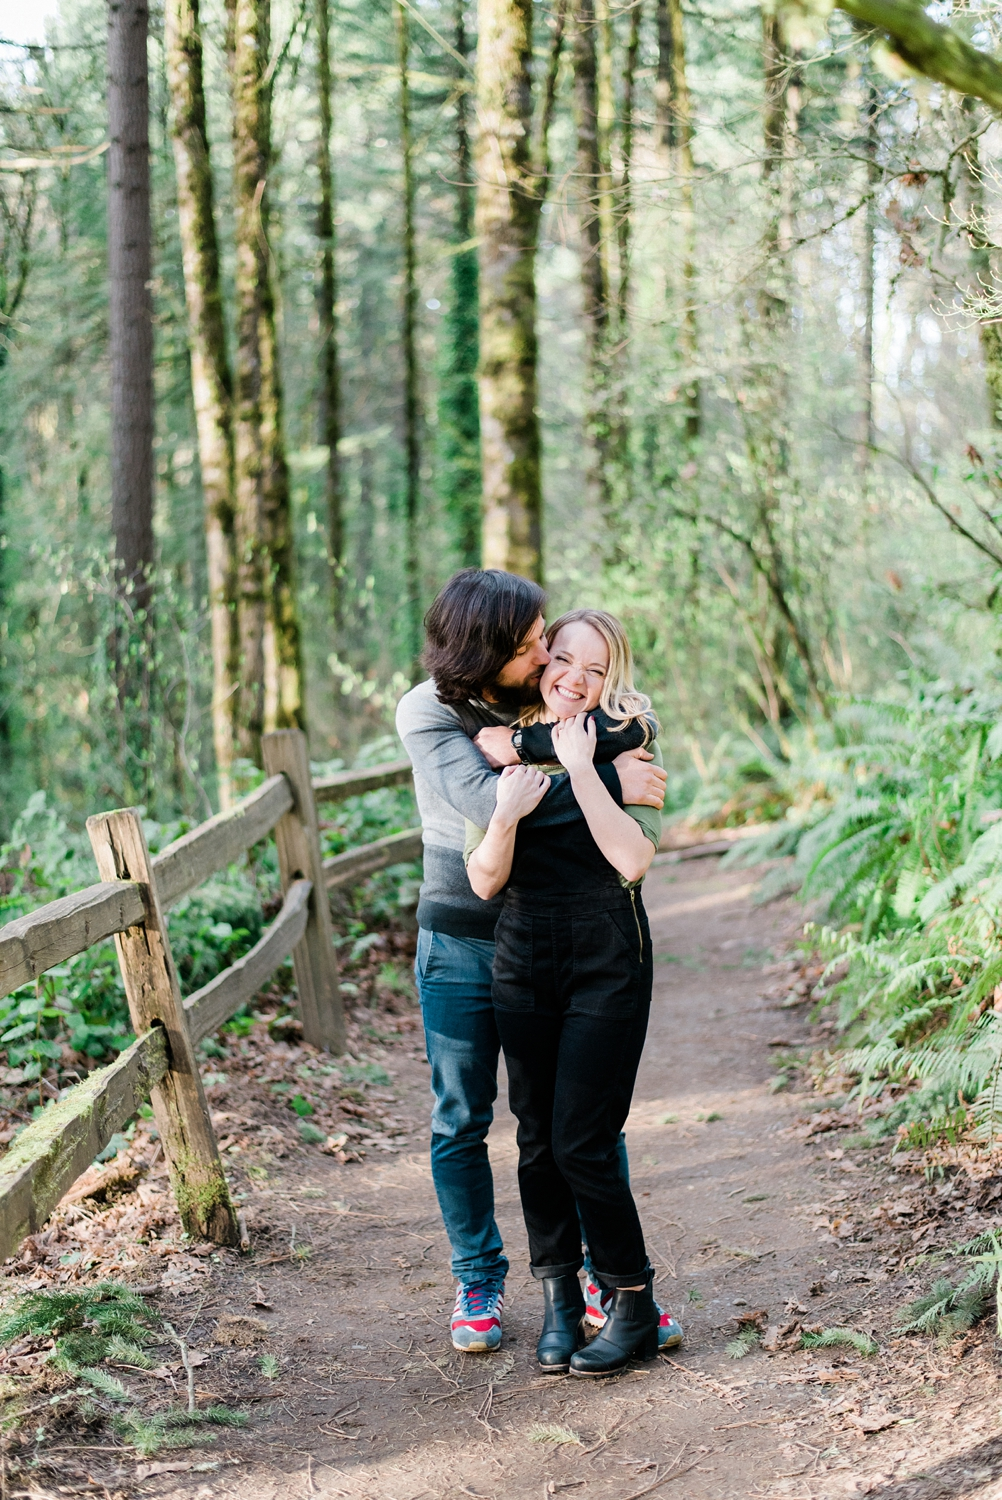 washington-park-portland-engagement-photos-hoyt-arboretum-shelley-marie-photo-120_cr.jpg